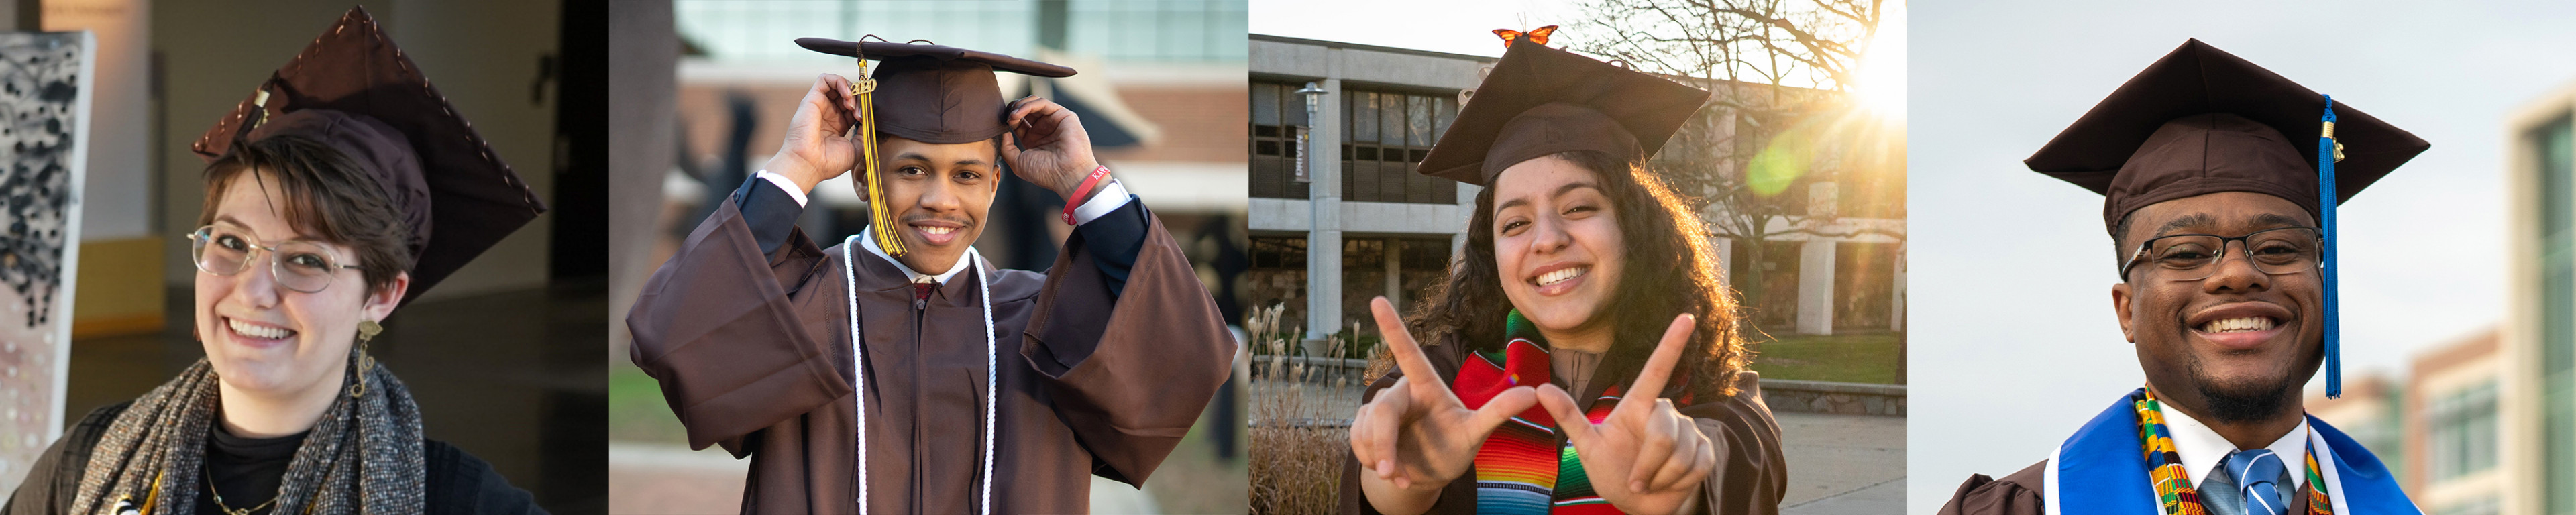 Photos of students in graduation caps.